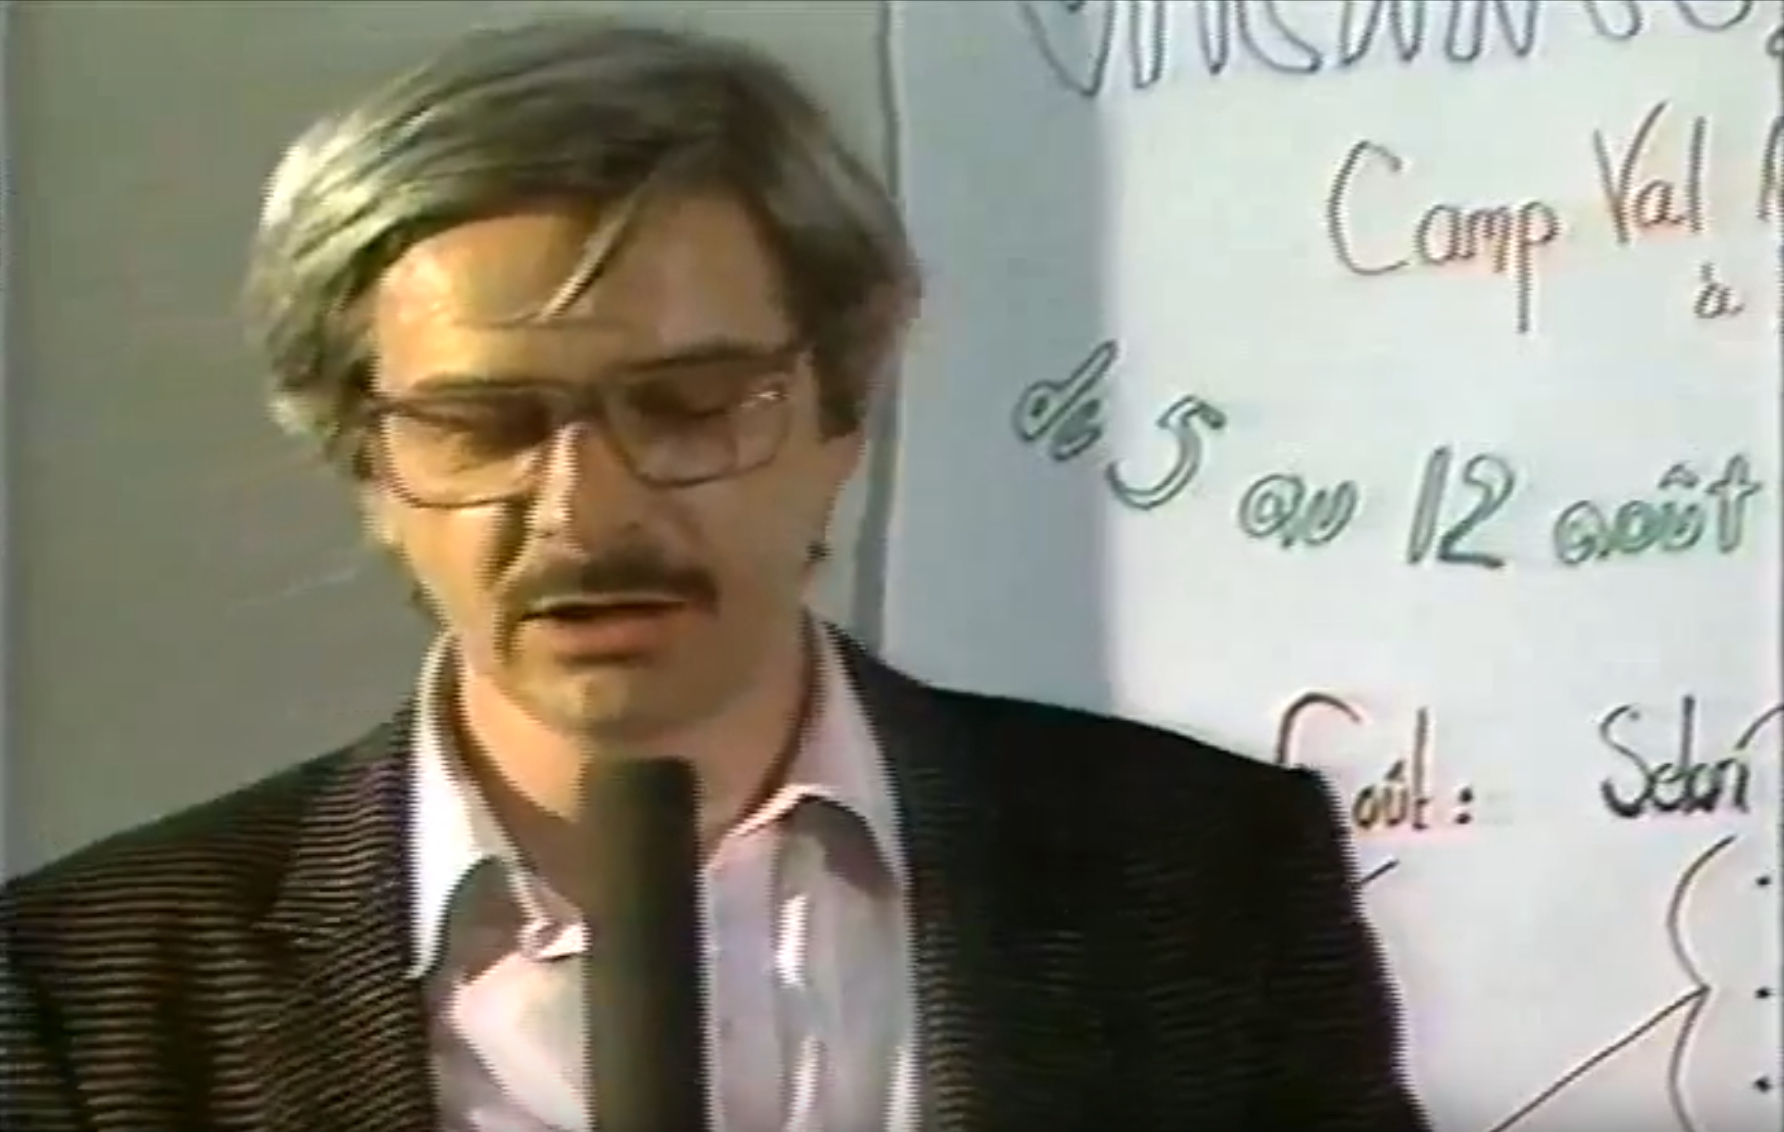 man with glasses speaking into a microphone